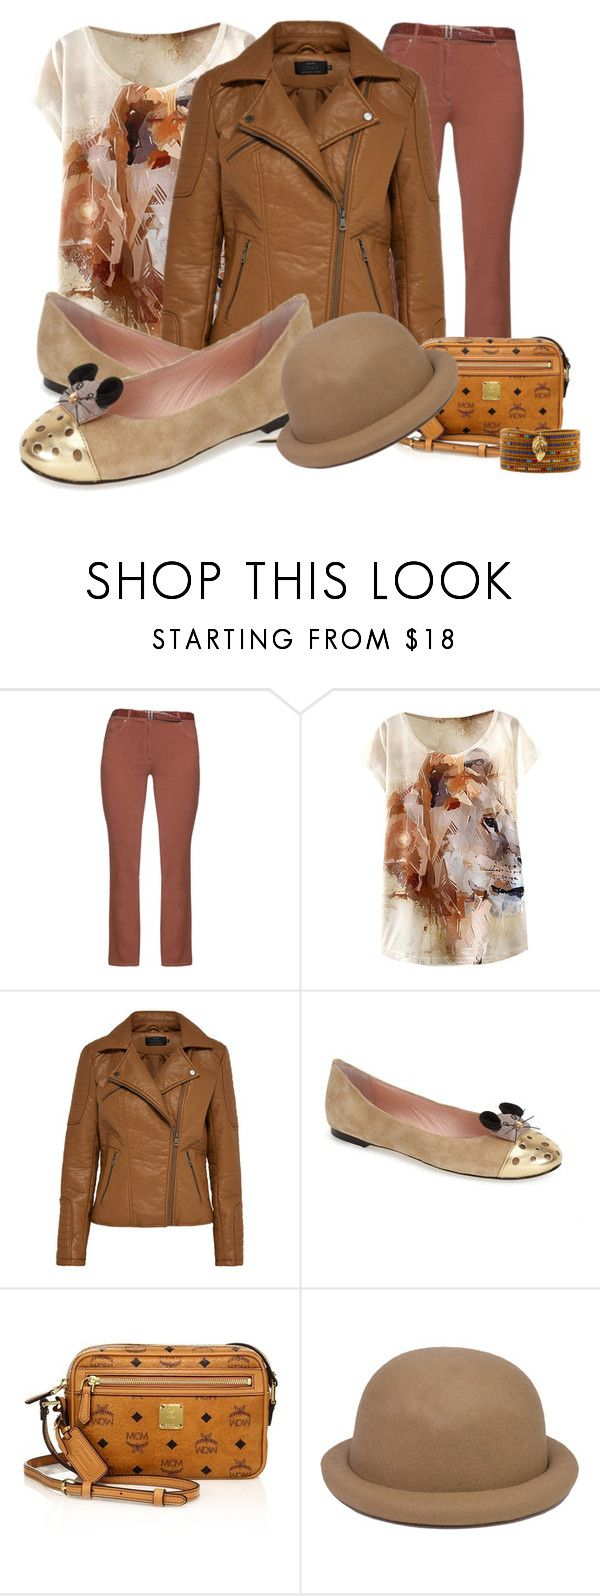 """""""High Expectations"""" by ljbminime ❤ liked on Polyvore featuring Zerres, Kate Spade, MCM, Chan Luu, women's clothing, women's fashion, women, female, woman and misses"""